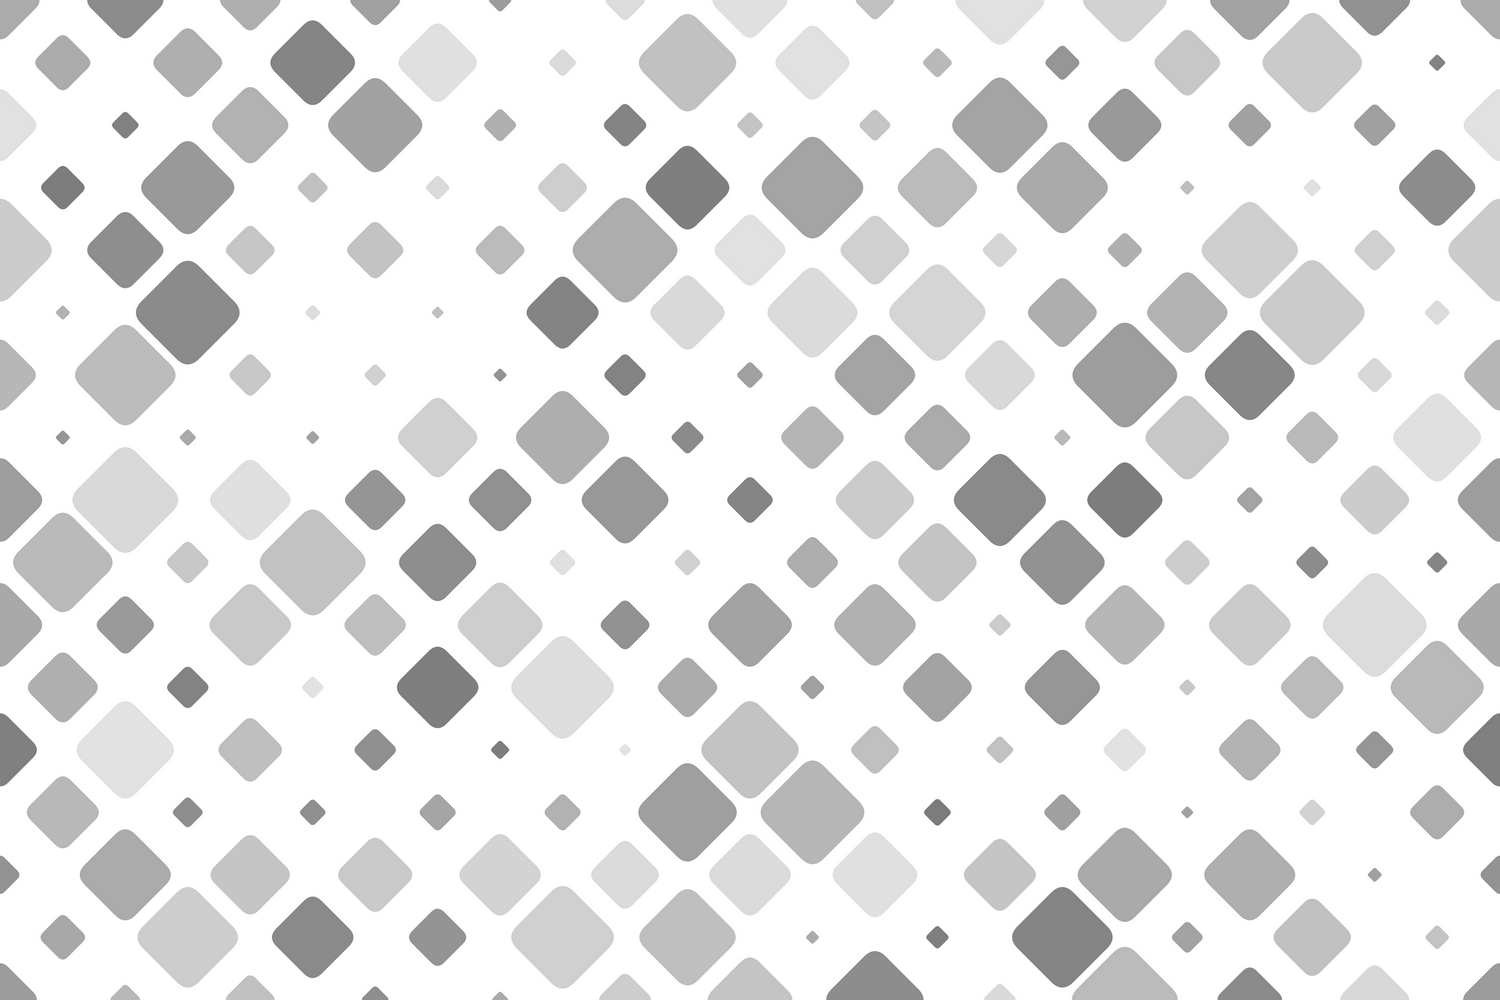 16 Seamless Square Backgrounds AI, EPS, JPG 5000x5000 example image 11